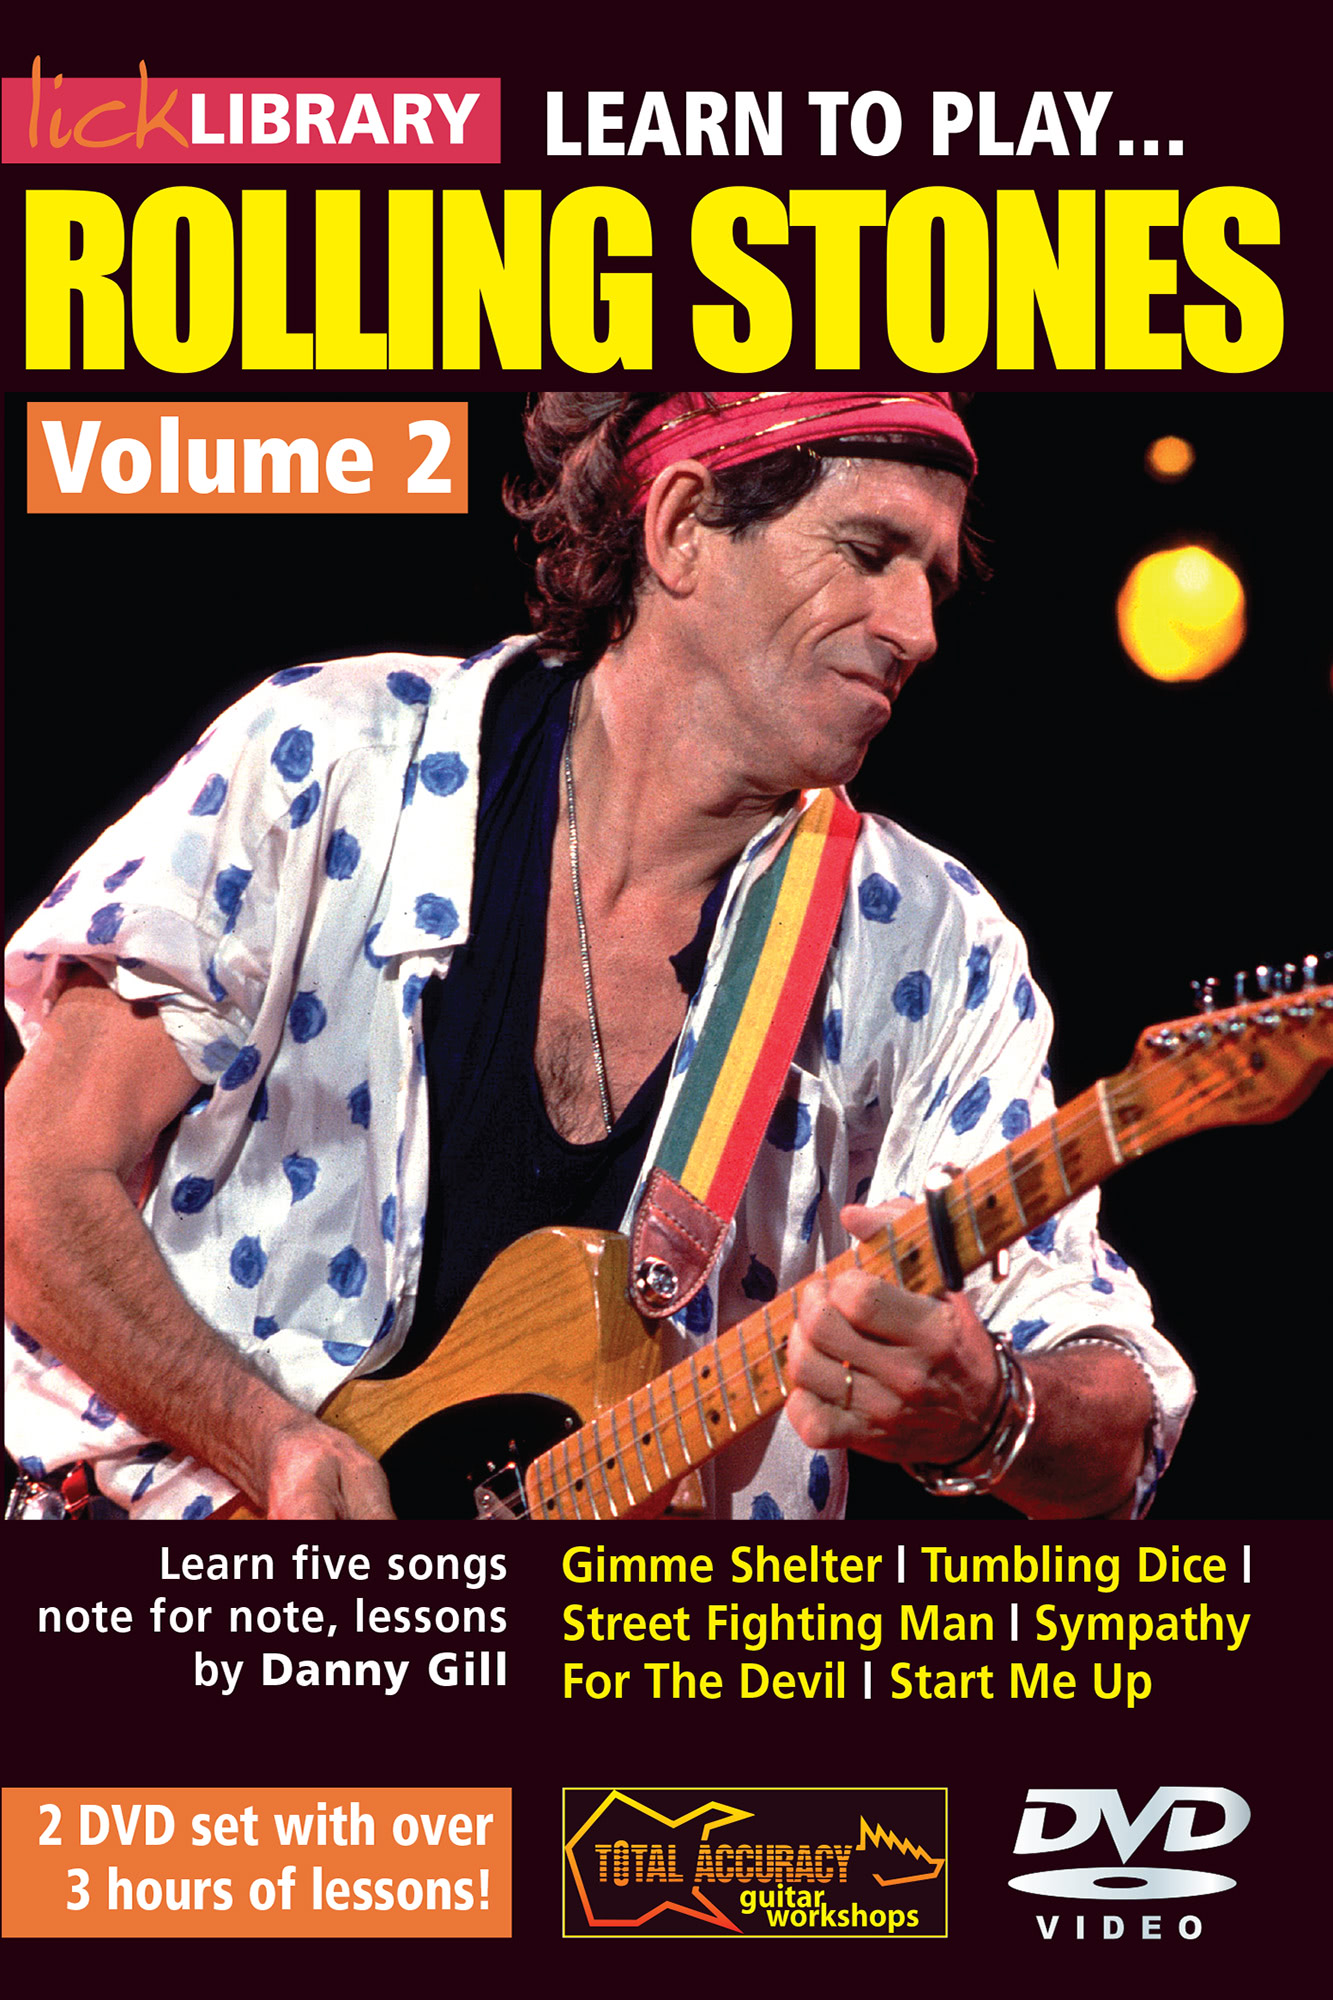 Learn To Play Rolling Stones Volume 2